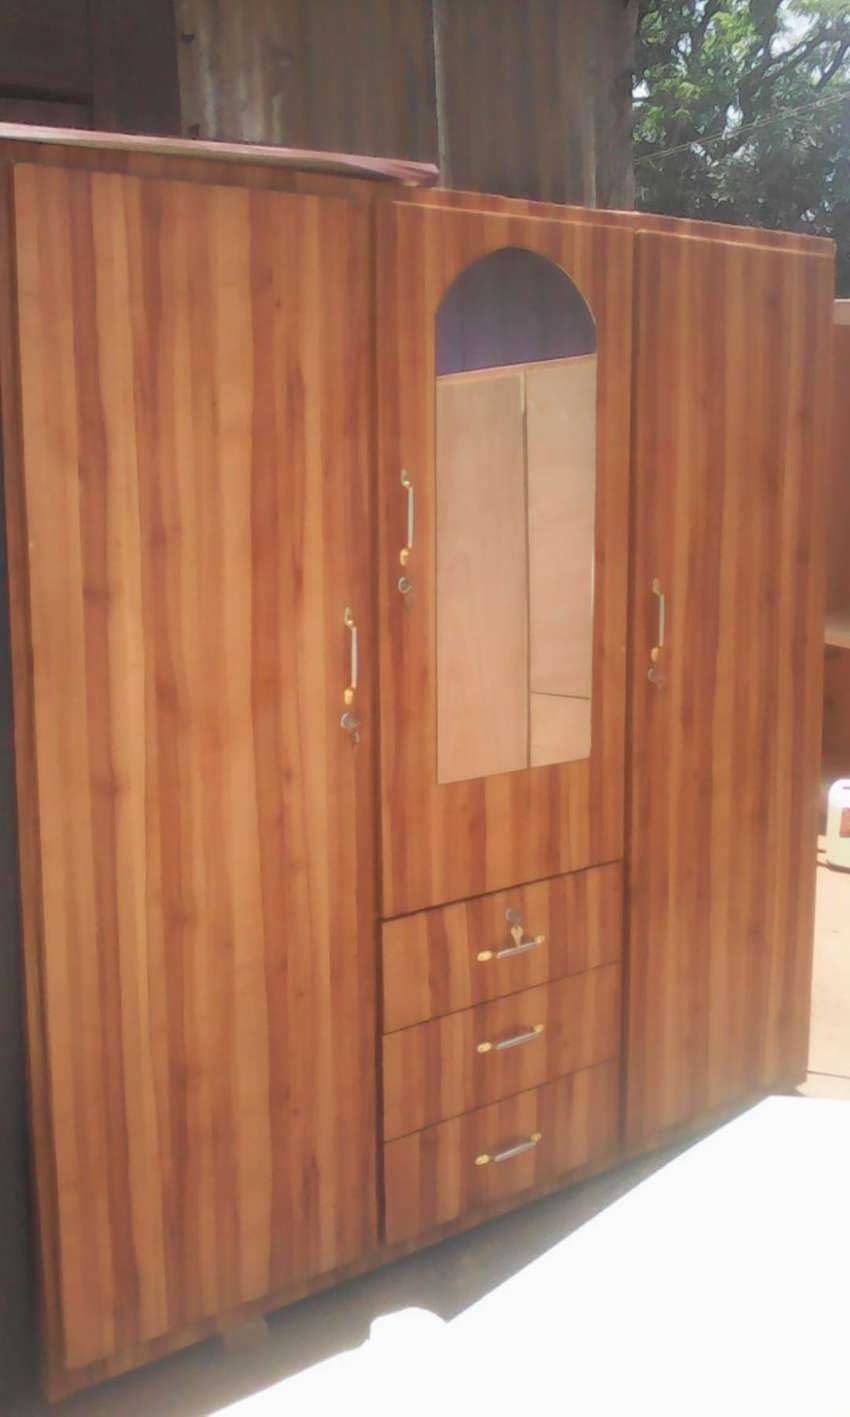 Brand new 3in 1 wardrobe for sell at a cool price. 0